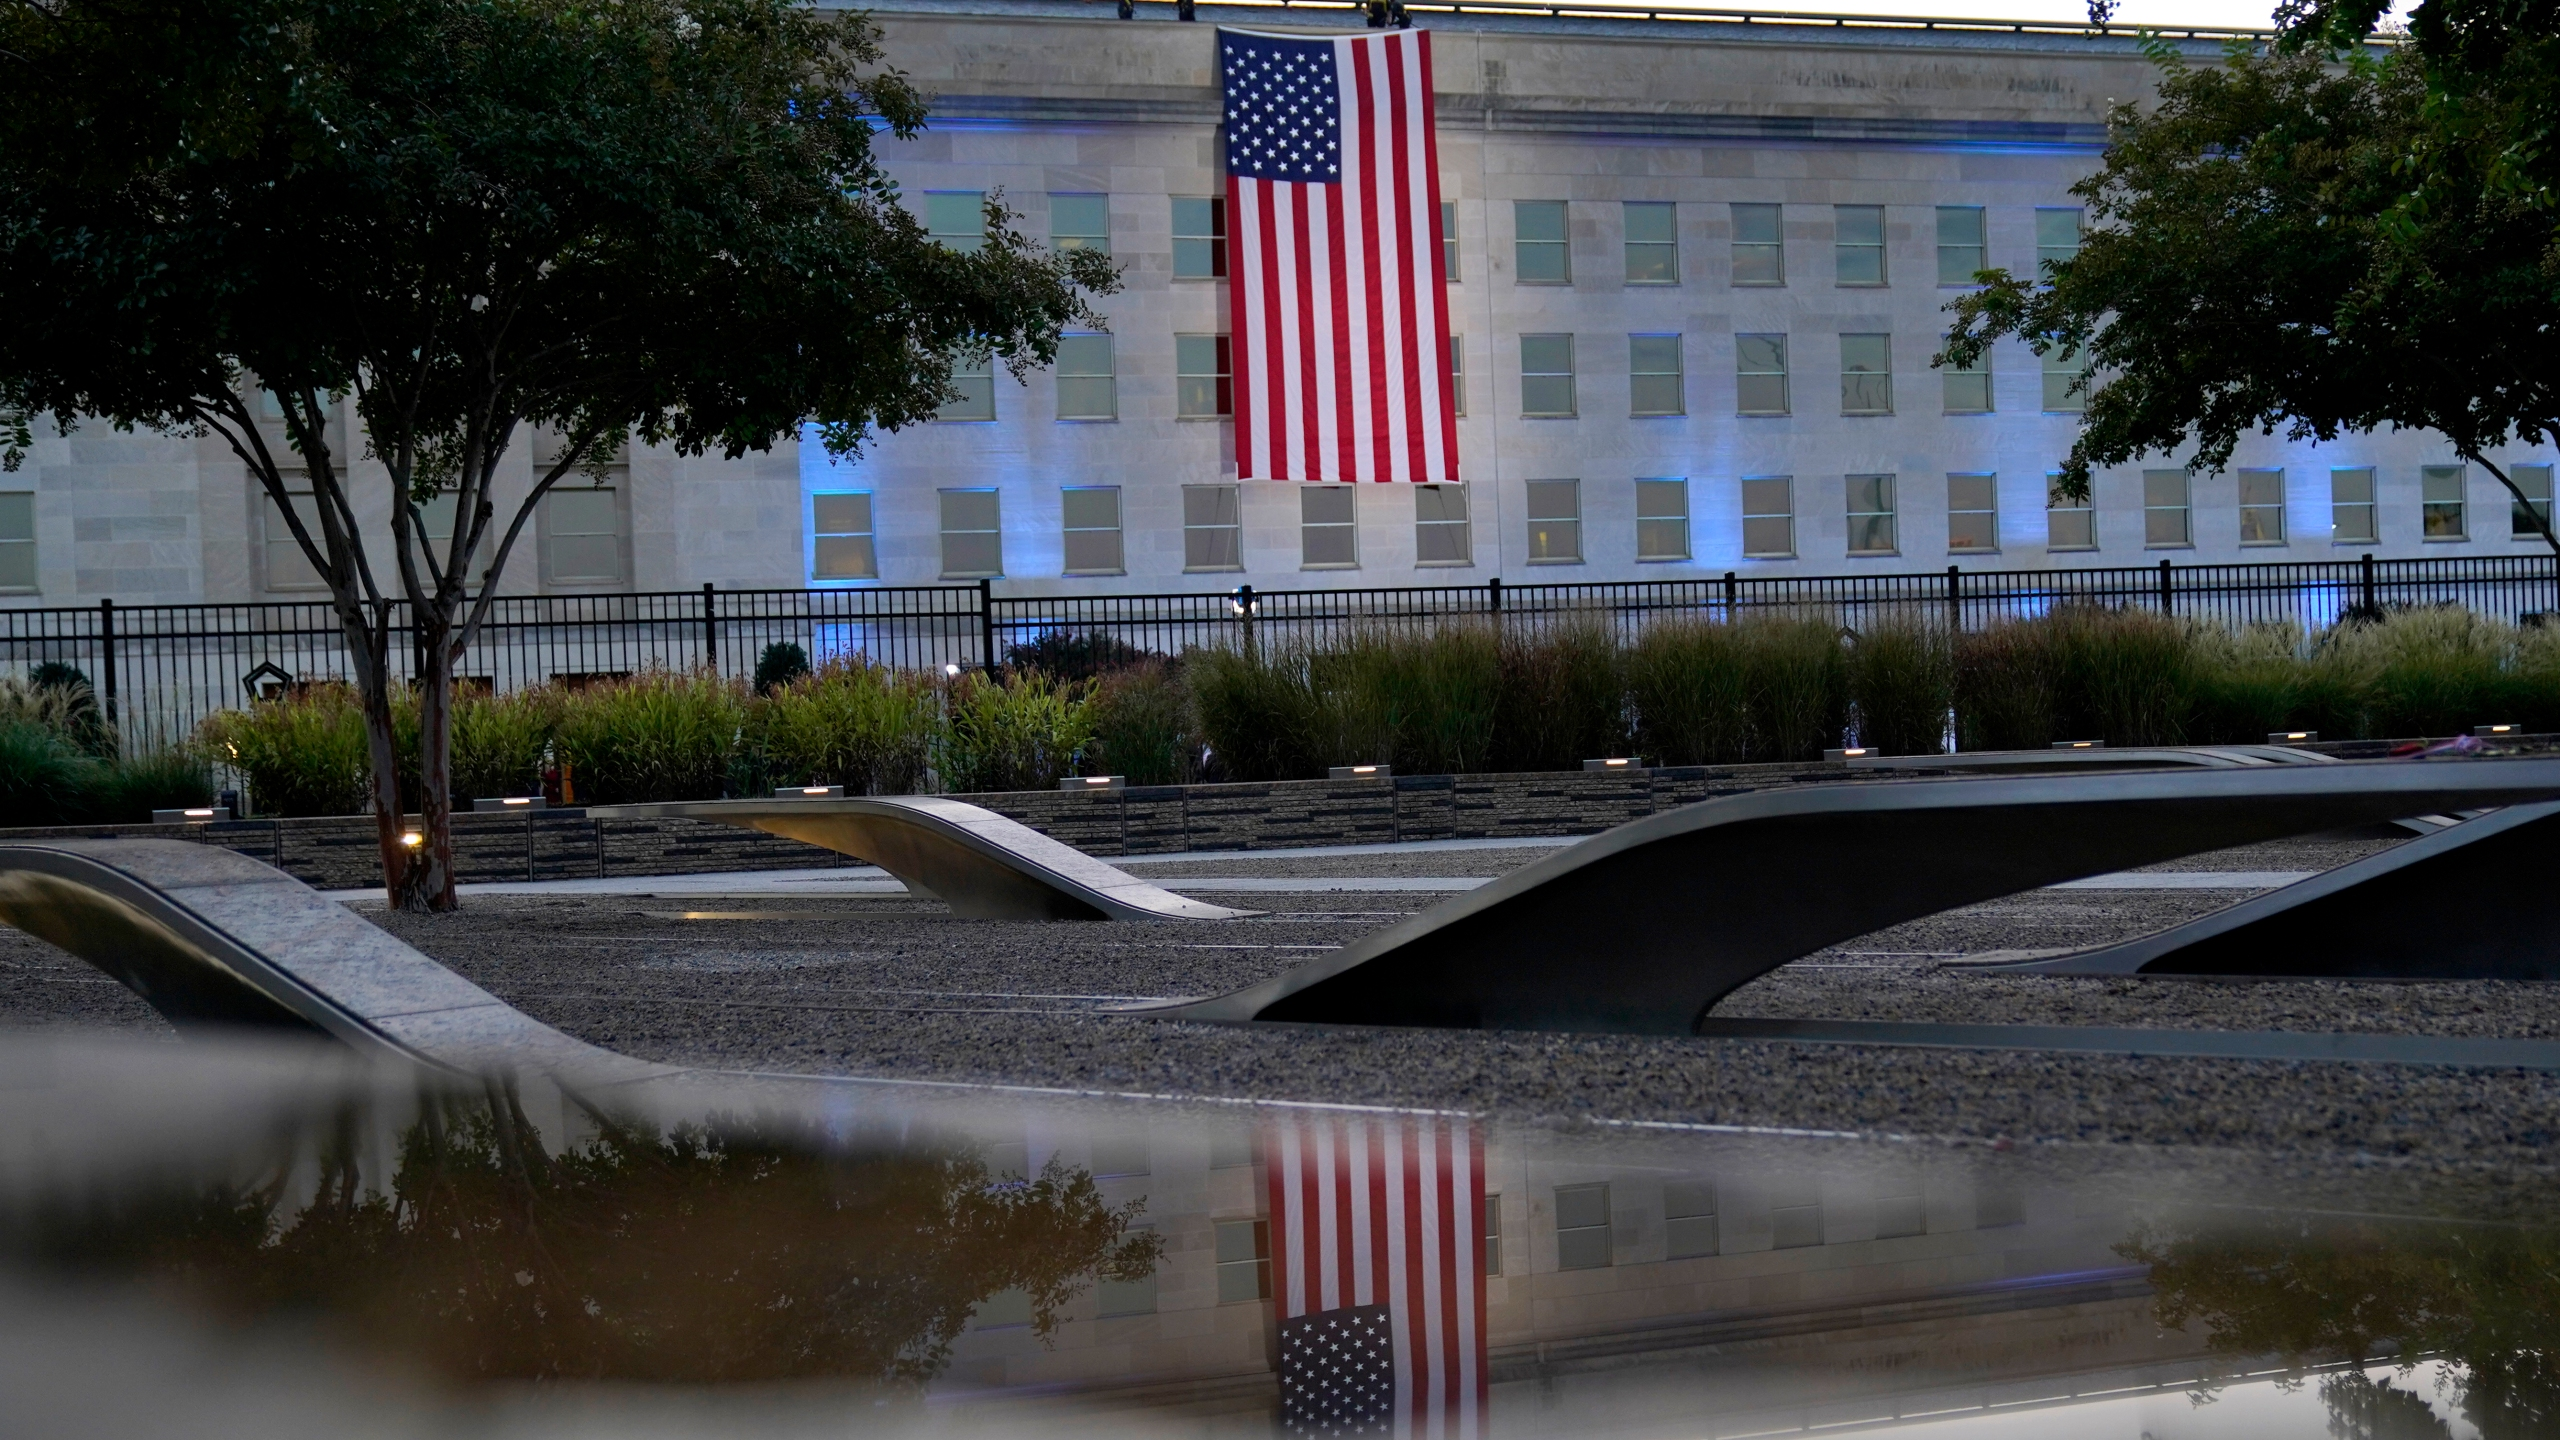 An American flag is unfurled at the Pentagon in Washington, Saturday, Sept. 11, 2021, at sunrise on the morning of the 20th anniversary of the terrorist attacks. (AP Photo/Alex Brandon)